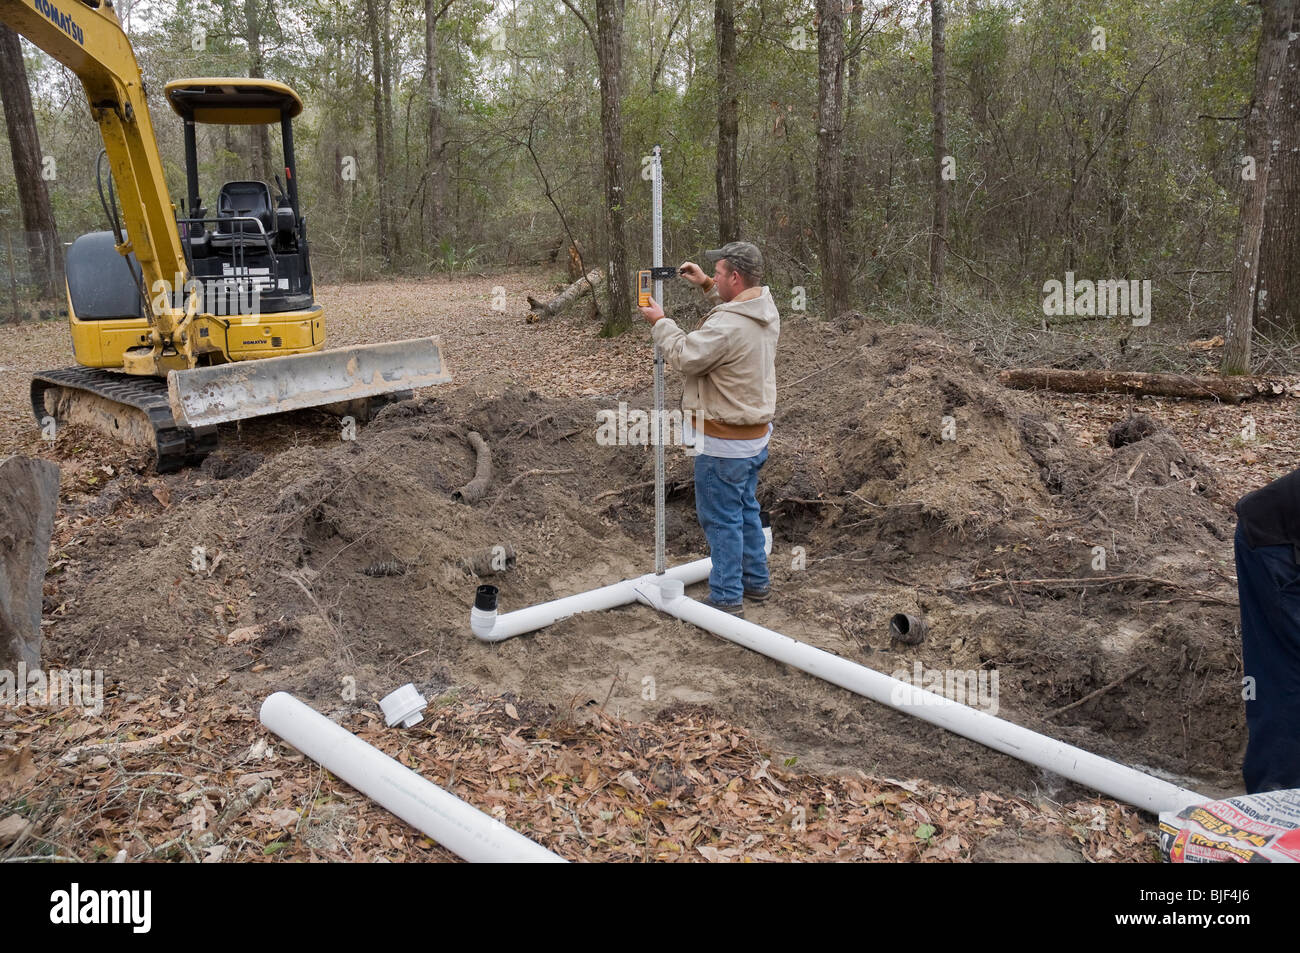 Installing New Septic System Drainfield Checking Level